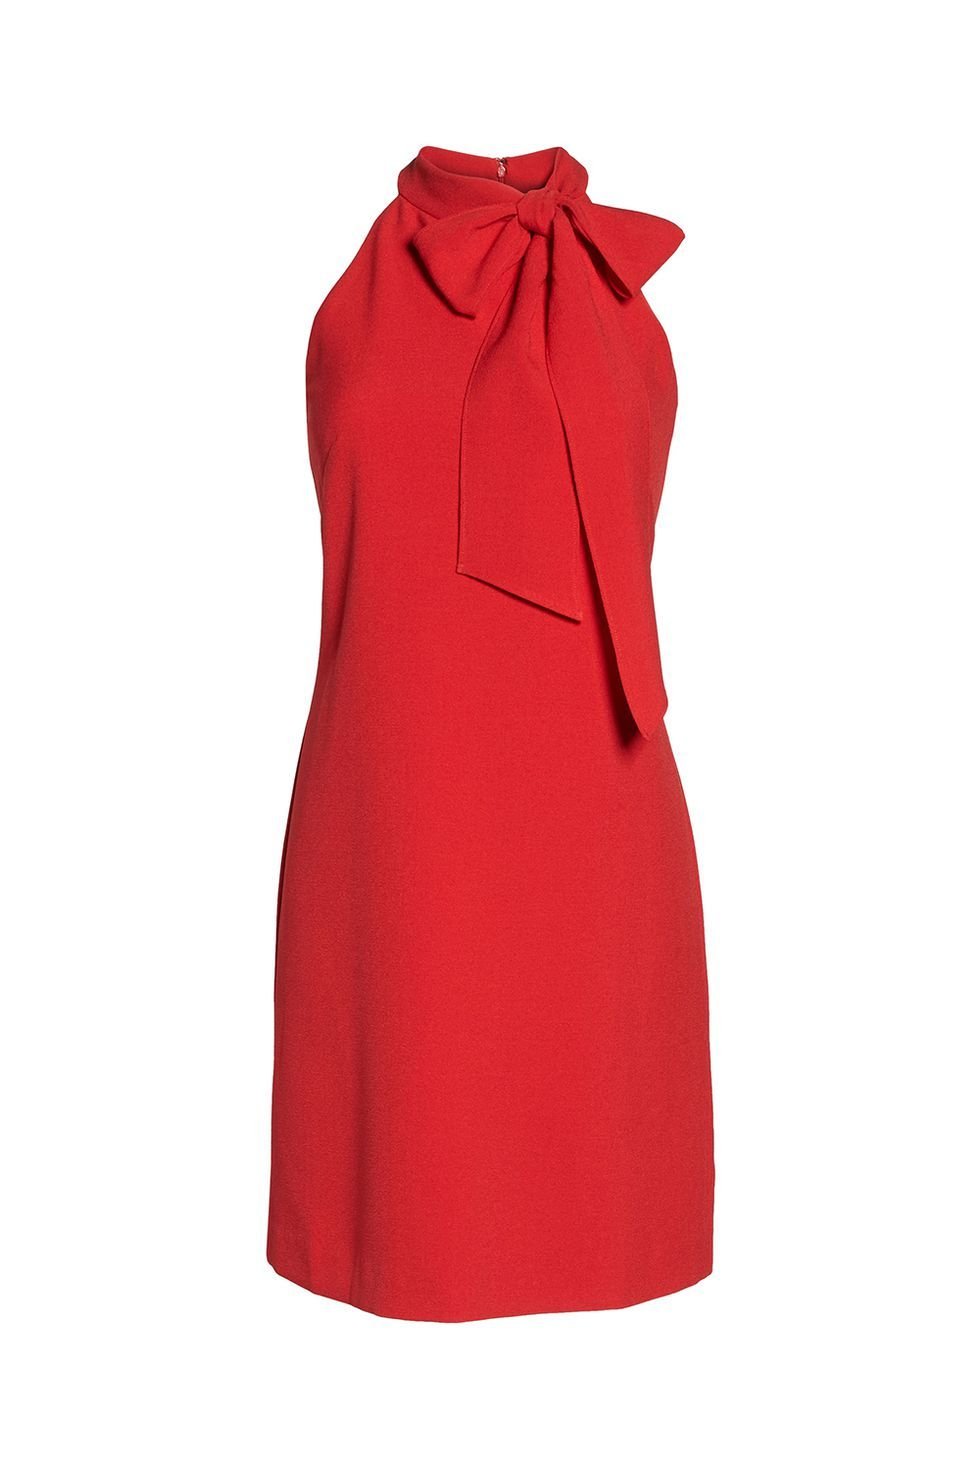 bc46914d8d A bright red dress. Vince Camuto, $138 You can definitely get away with a  minidress for semi-formal cocktail affairs. To keep your outfit modest,  however, ...